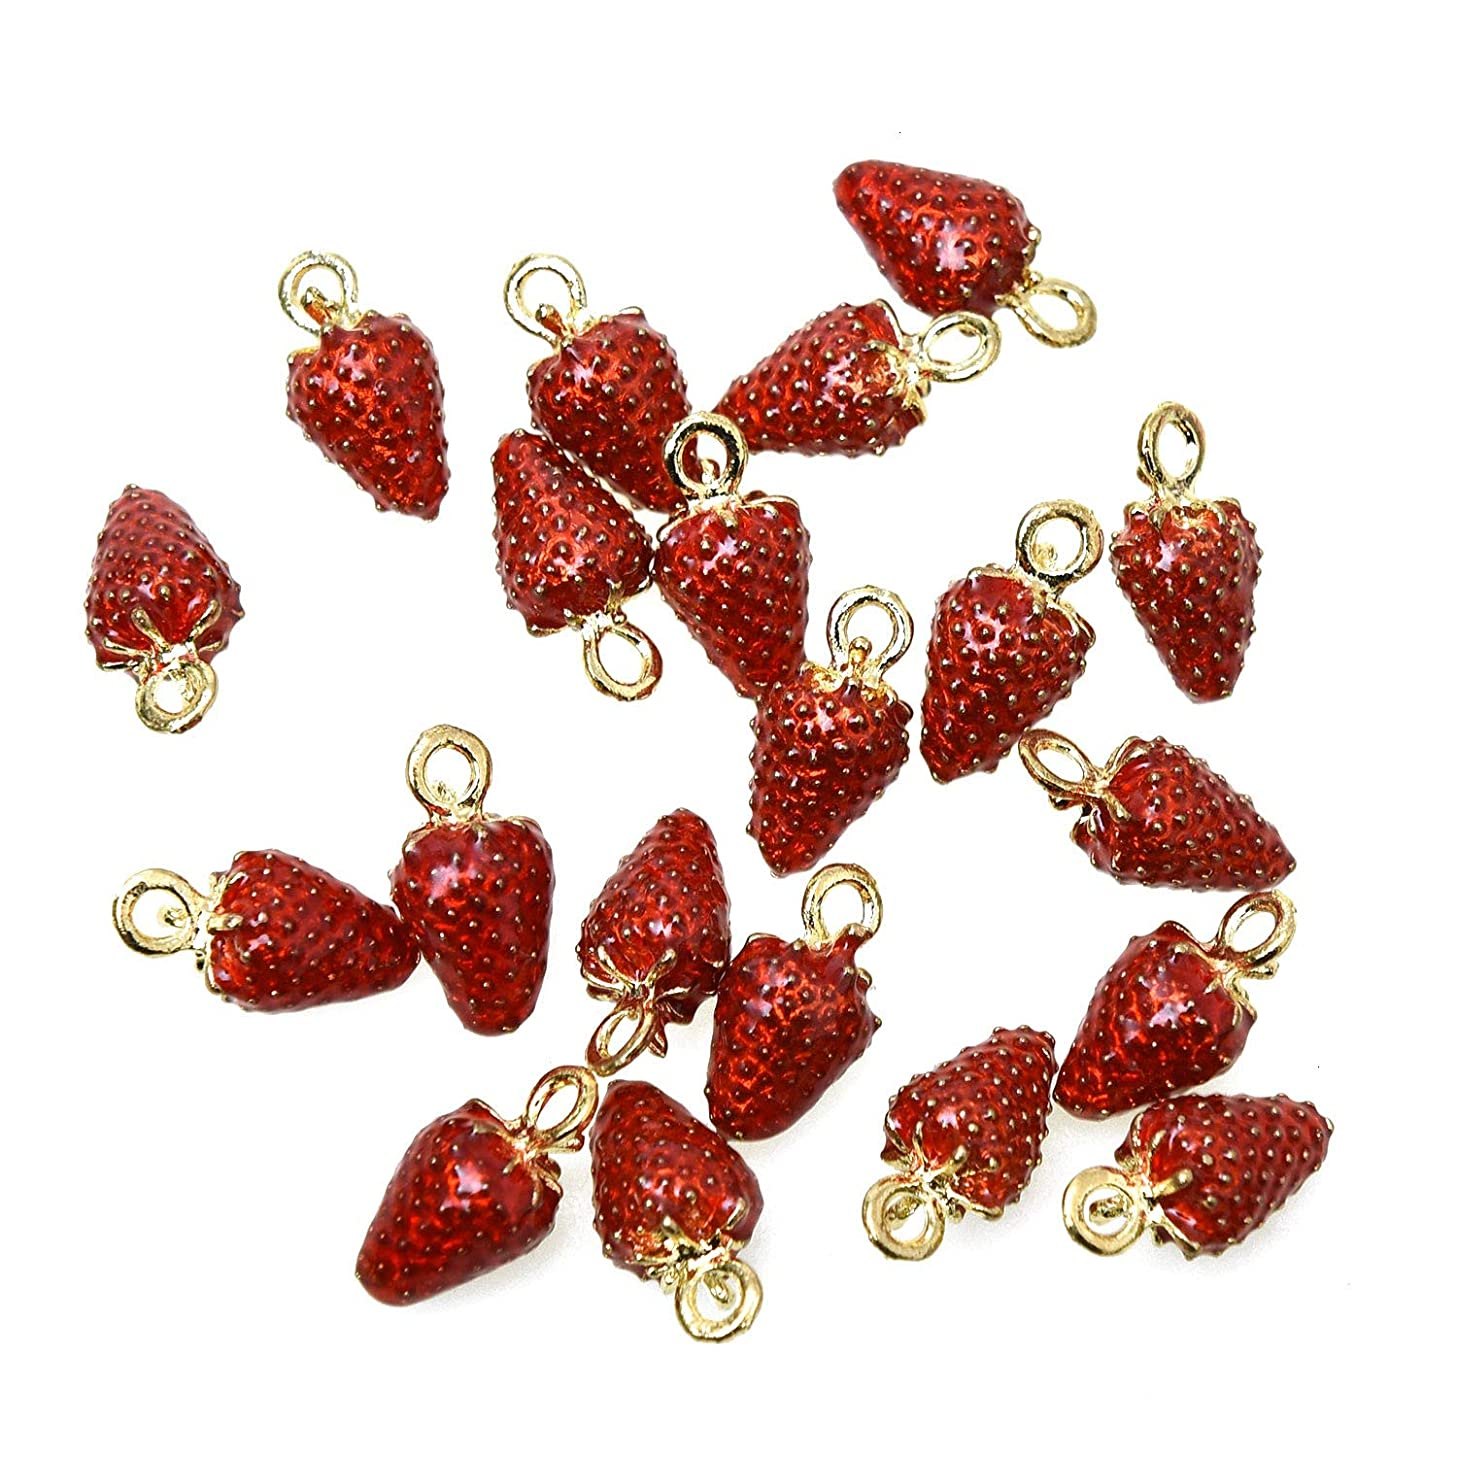 Monrocco 15Pcs Enamel Strawberry Charms Pendants Alloy Fruit Charms for Making Necklace Bracelet Earrings